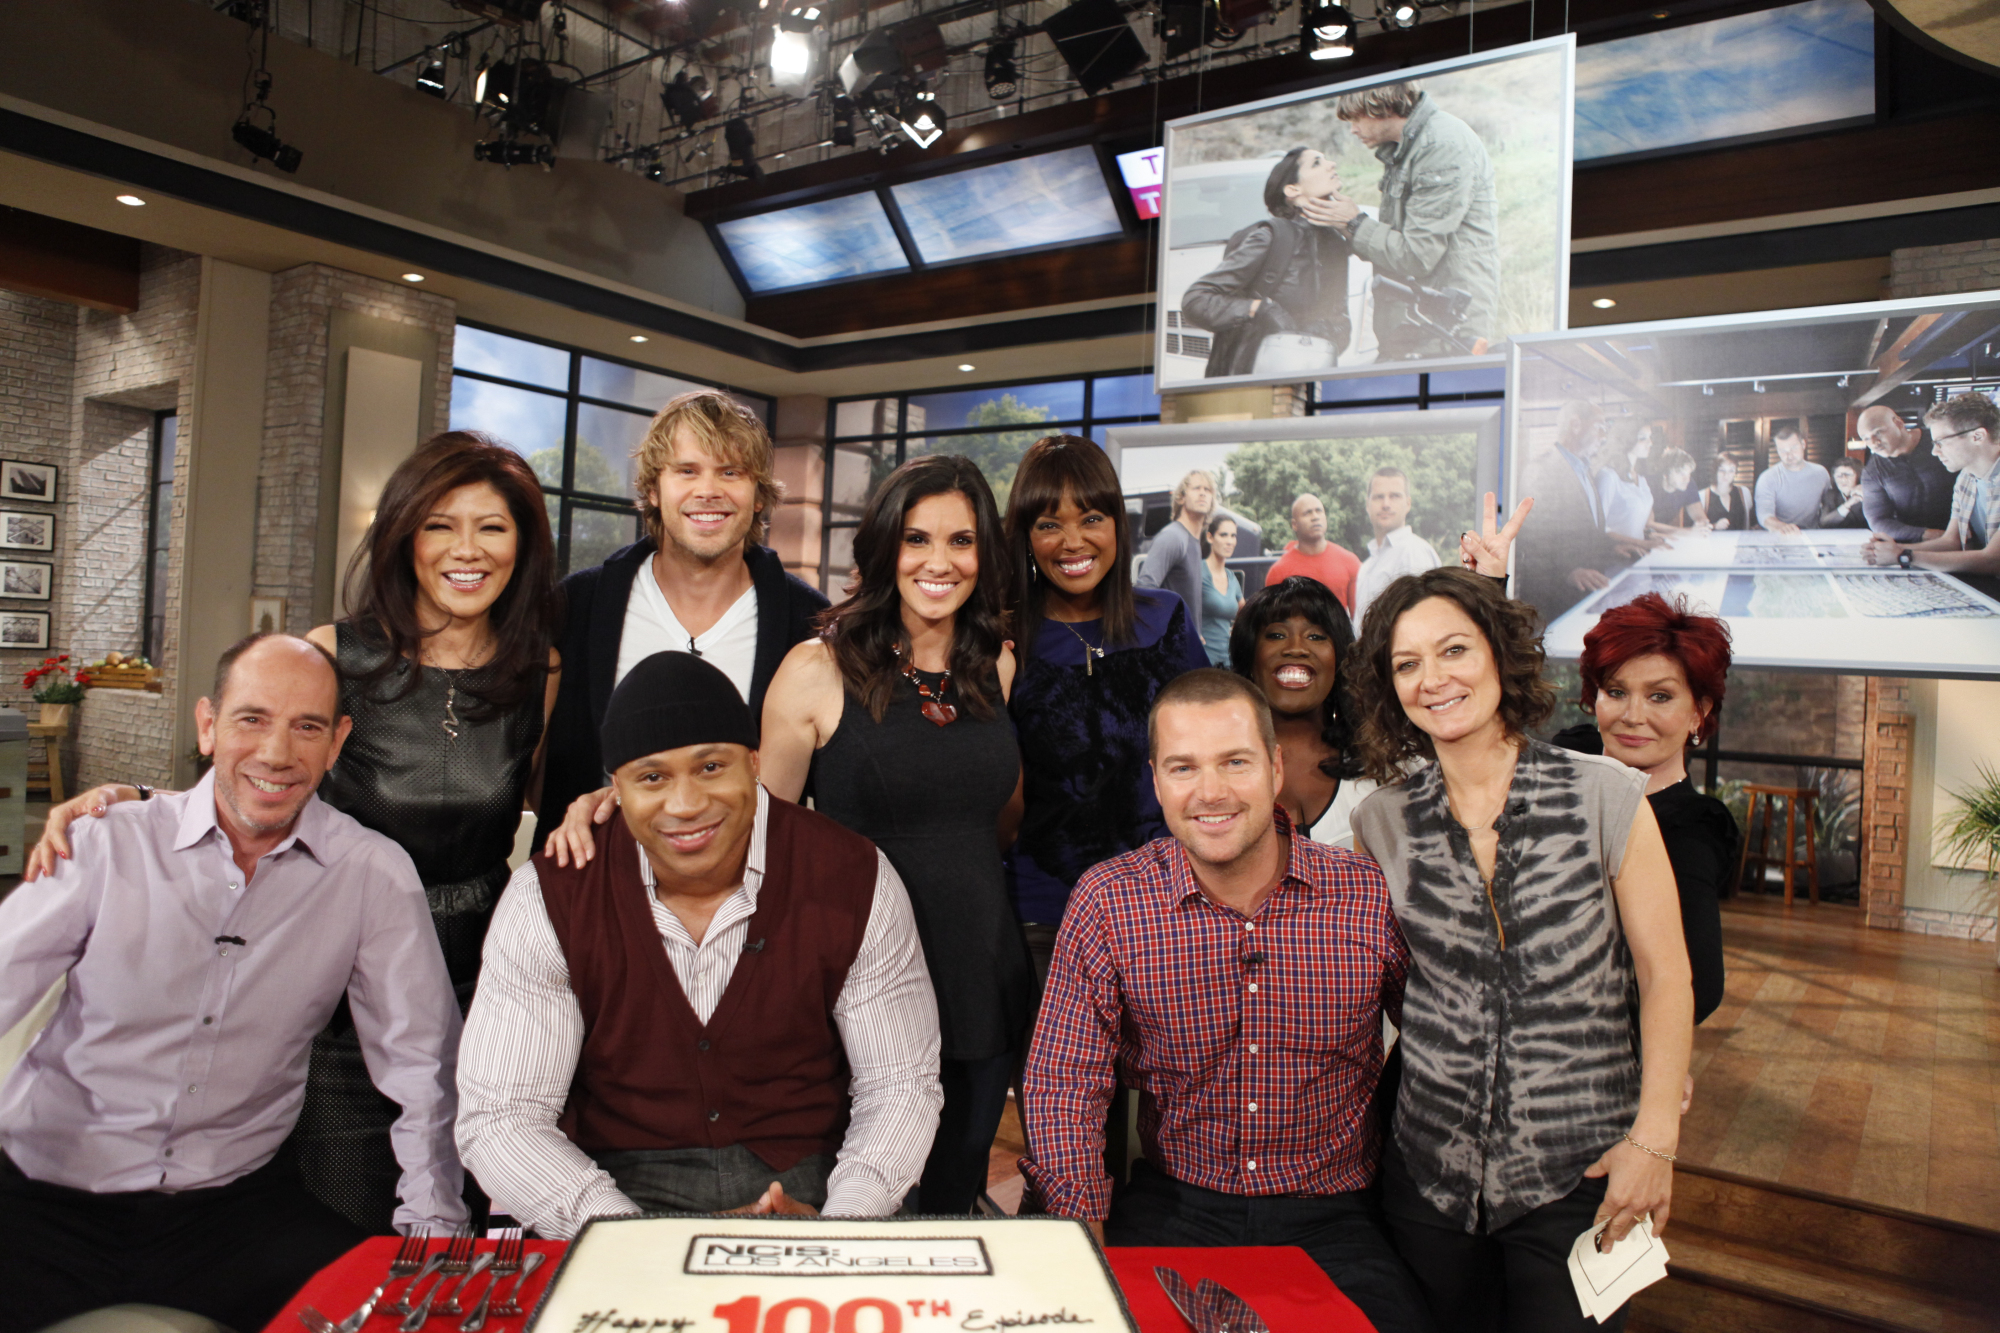 8. Miguel Ferrer, Eric Christian Olsen, LL Cool J, Daniela Ruah, and Chris O'Donnell - NCIS: Los Angeles